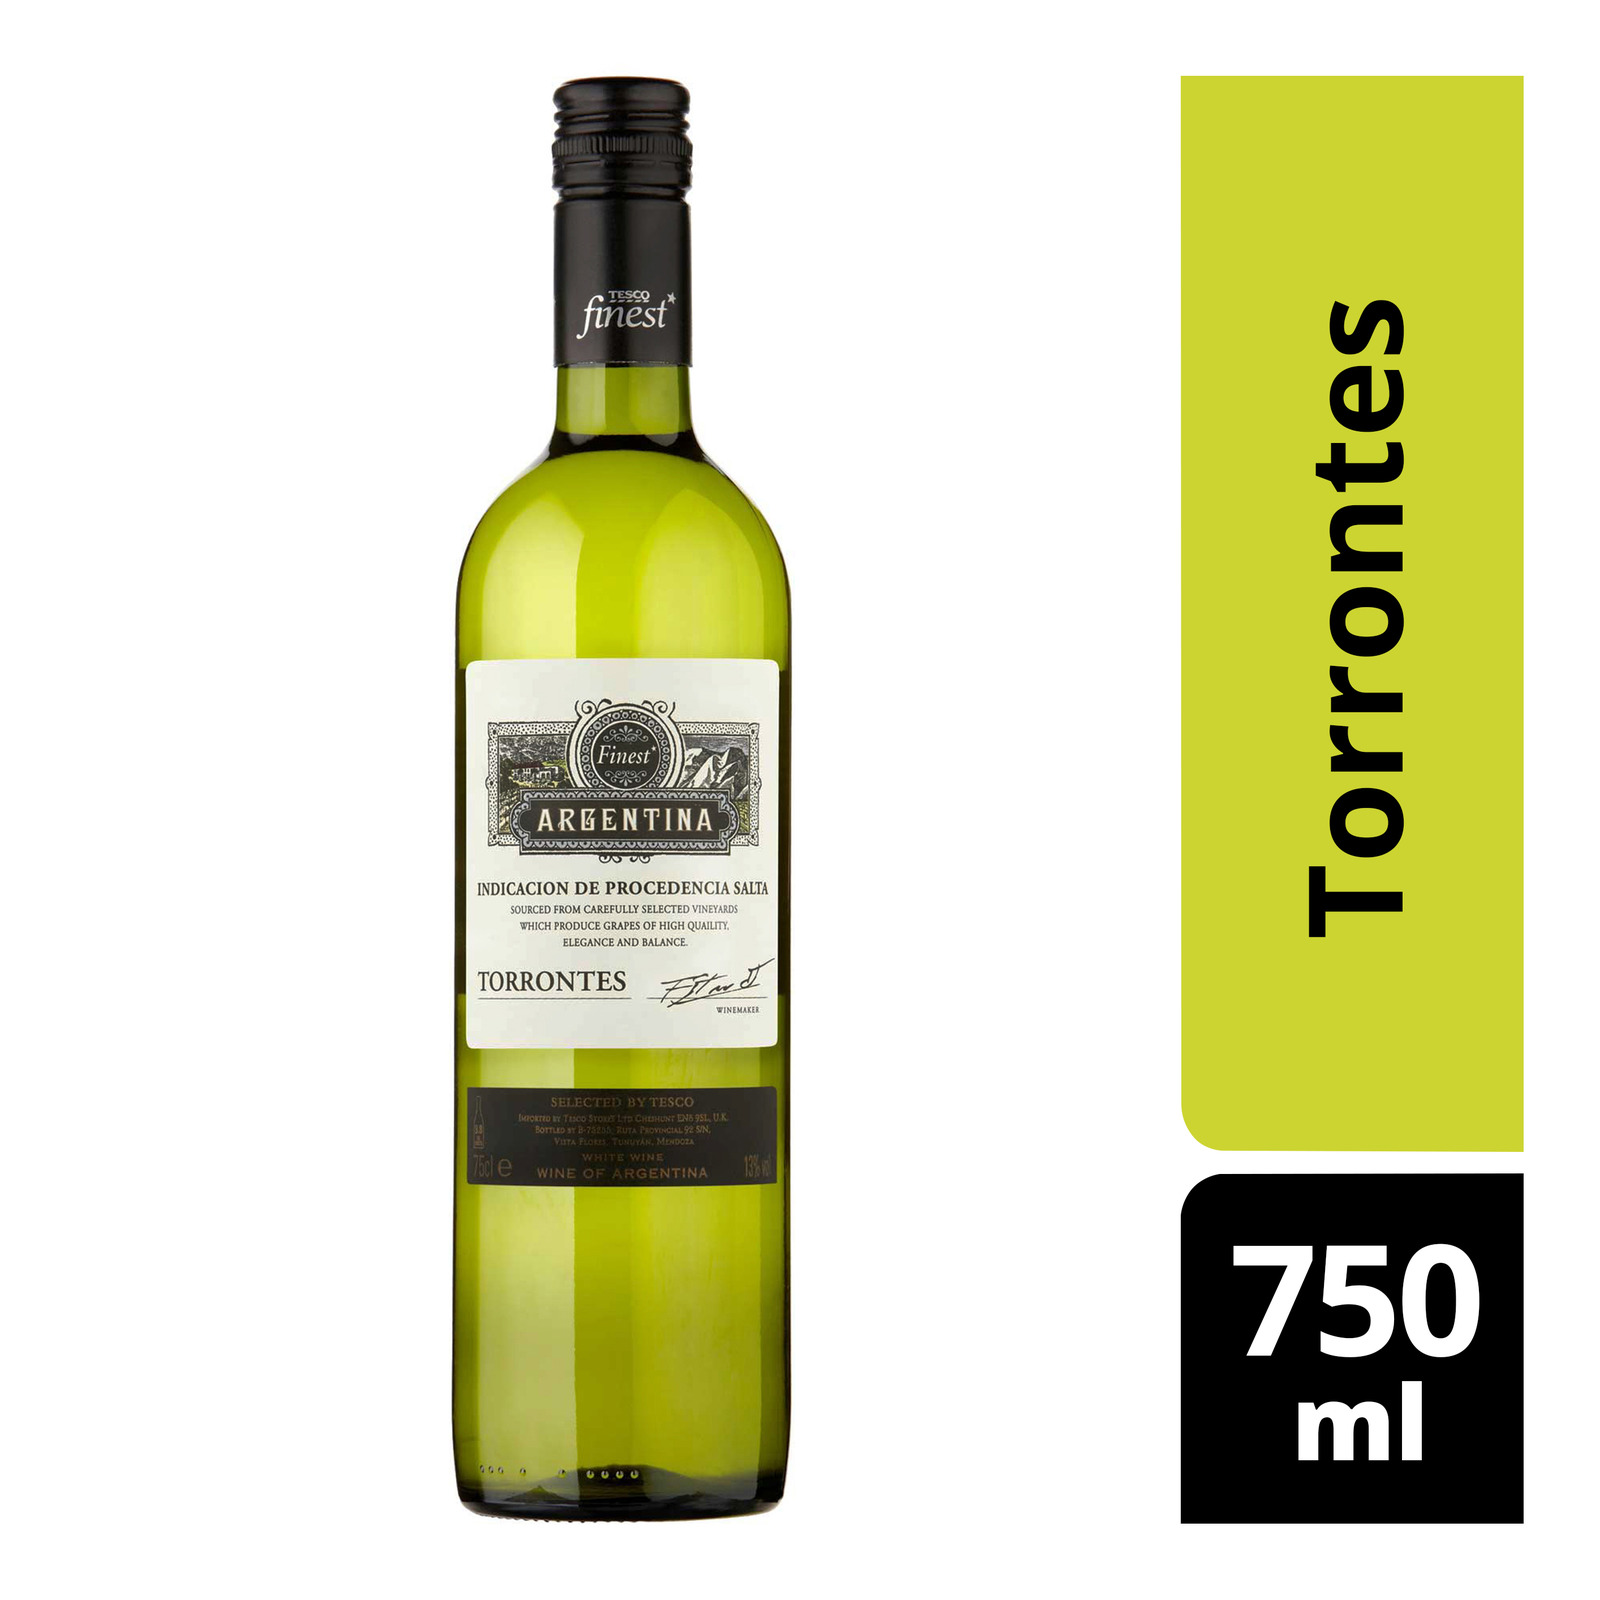 Tesco Finest White Wine - Torrontes